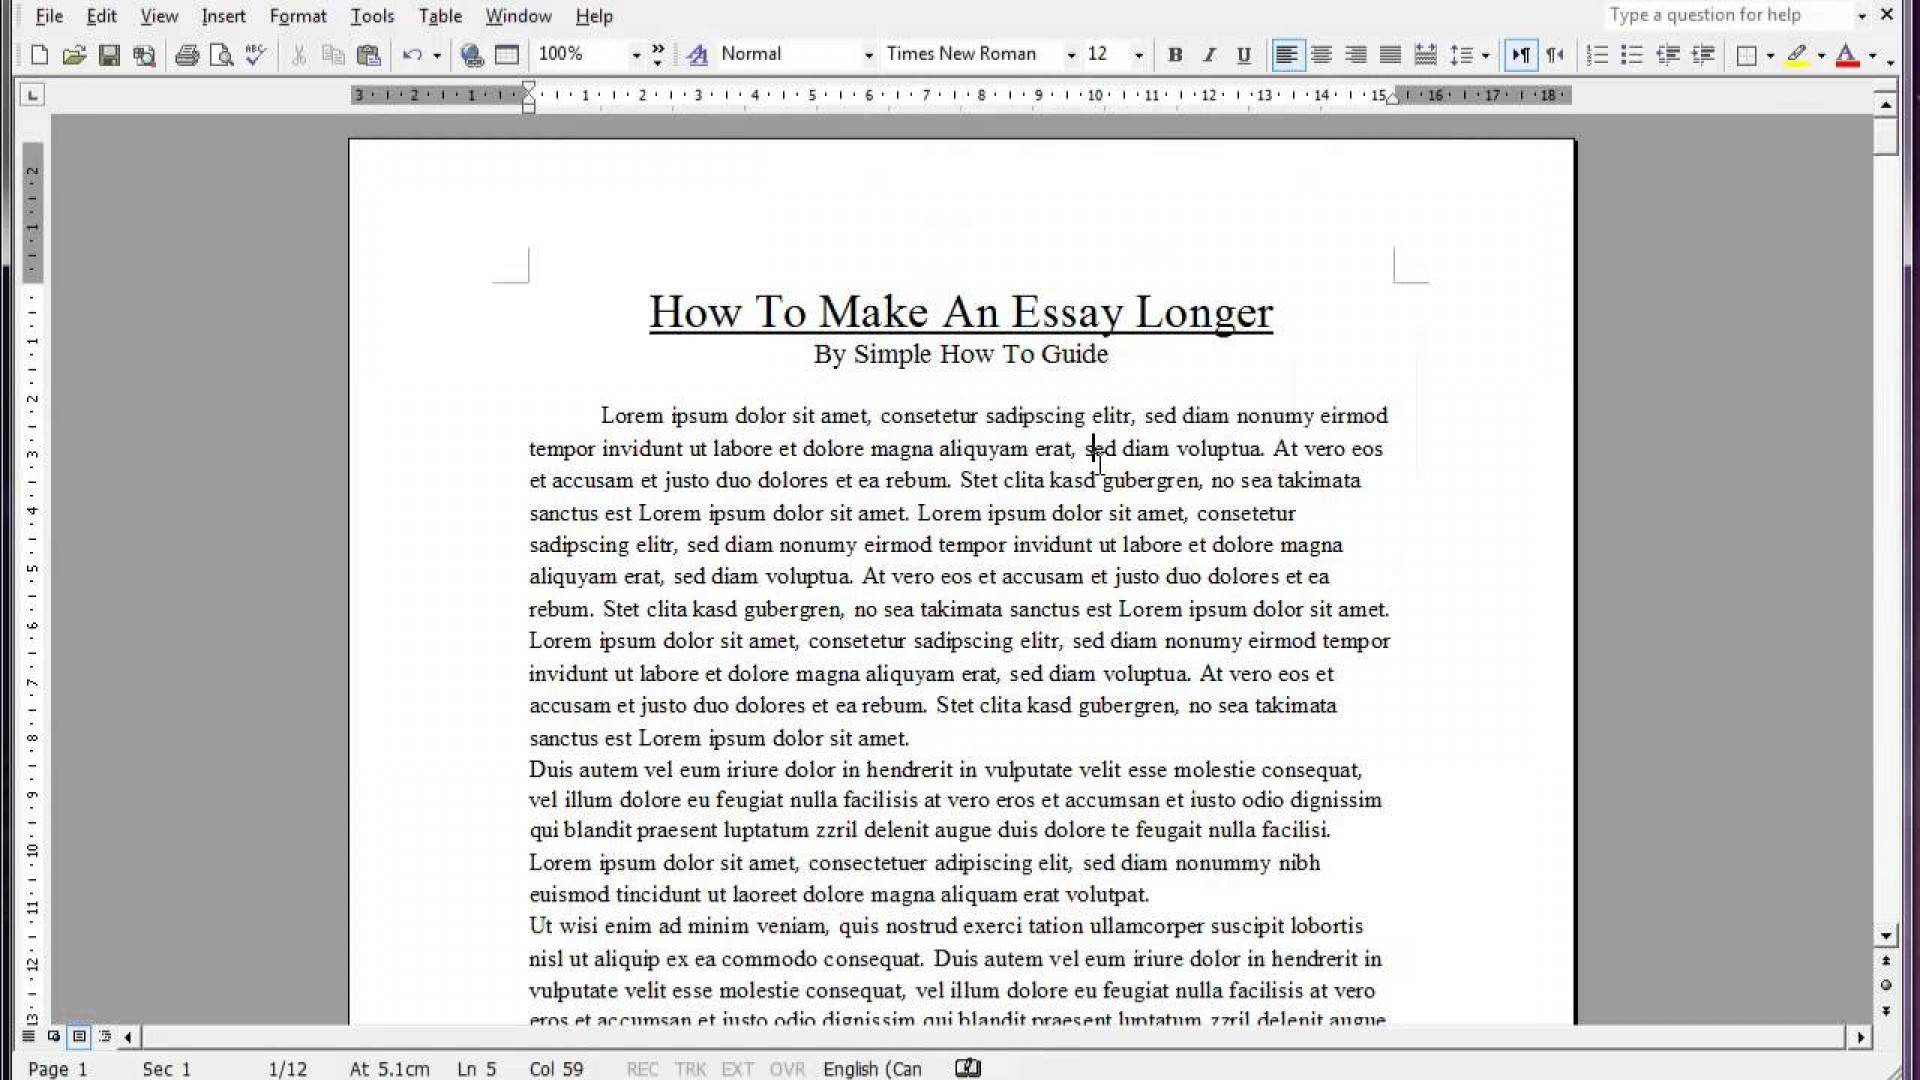 004 Essay Example Maxresdefault How To Make An Longer Word Top Count 1920